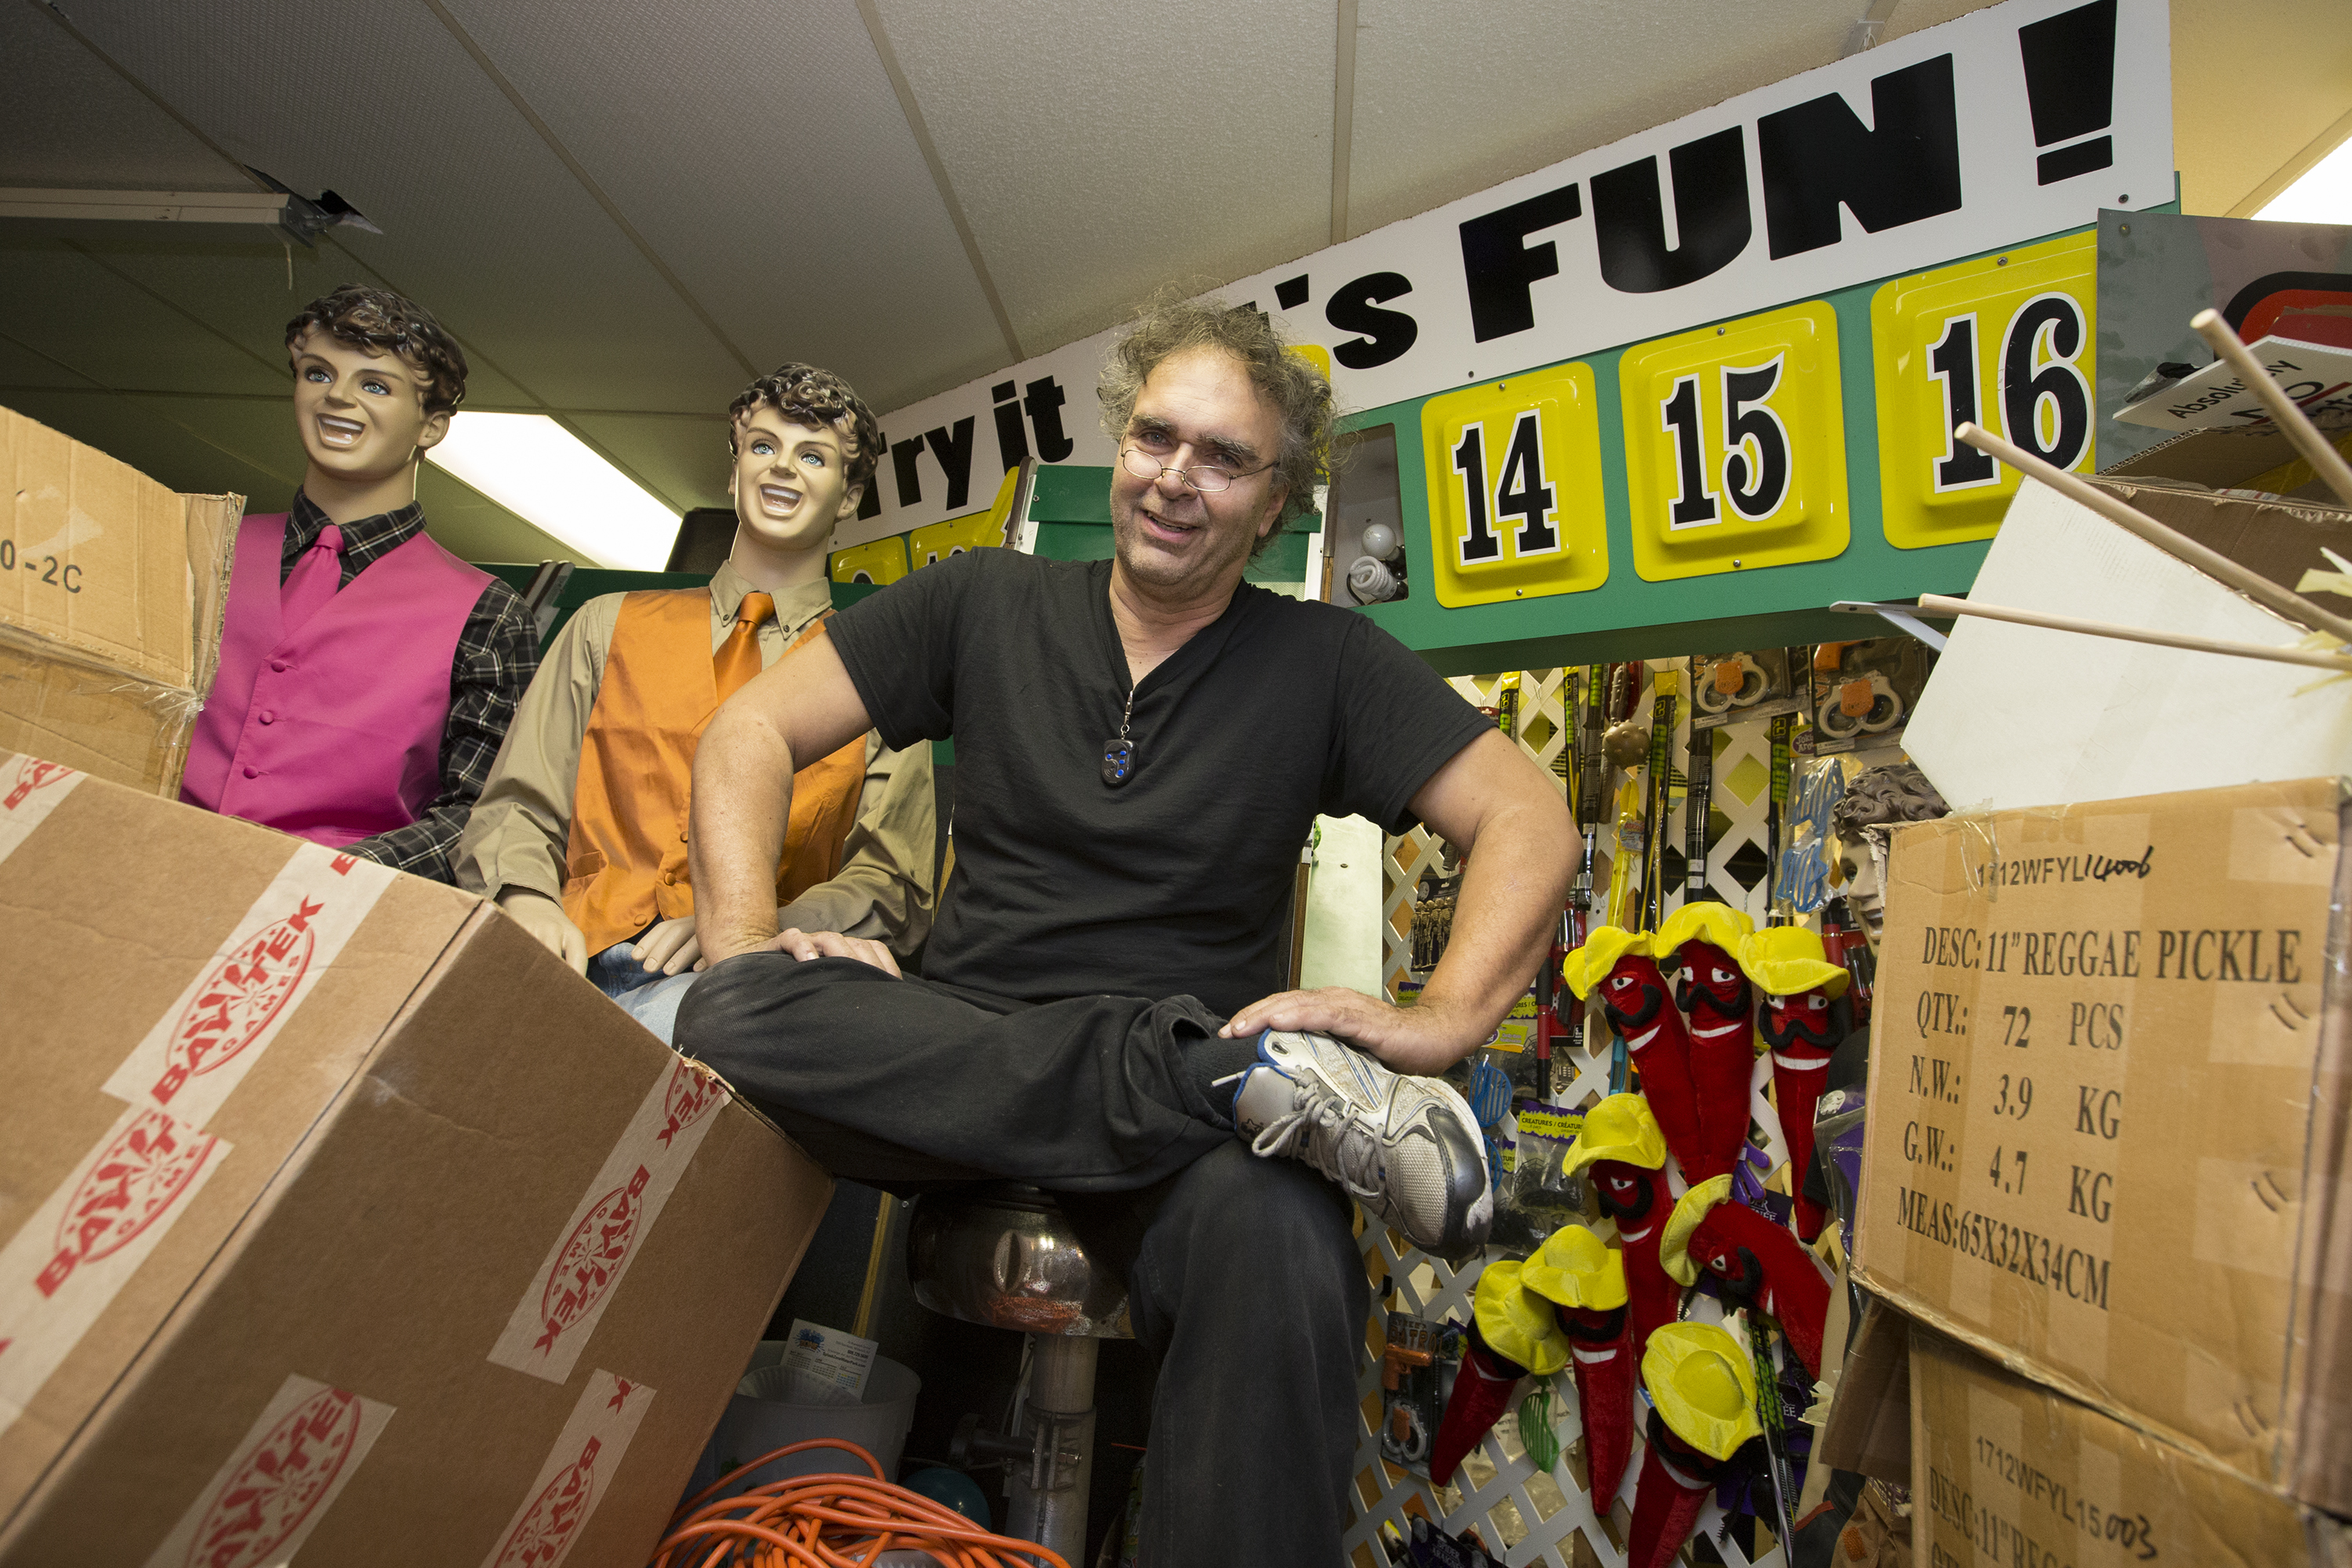 """With the Boardwalk Mall for sale, Randy Senna is not sure he´ll be a part of the future and he´s offering all the contents of his arcade for sale, $700,000 worth of games. He is shown with a few of the """"Randy"""" manaquinns, modeled after himself, in the arcade. CHARLES FOX / Staff Photographer"""